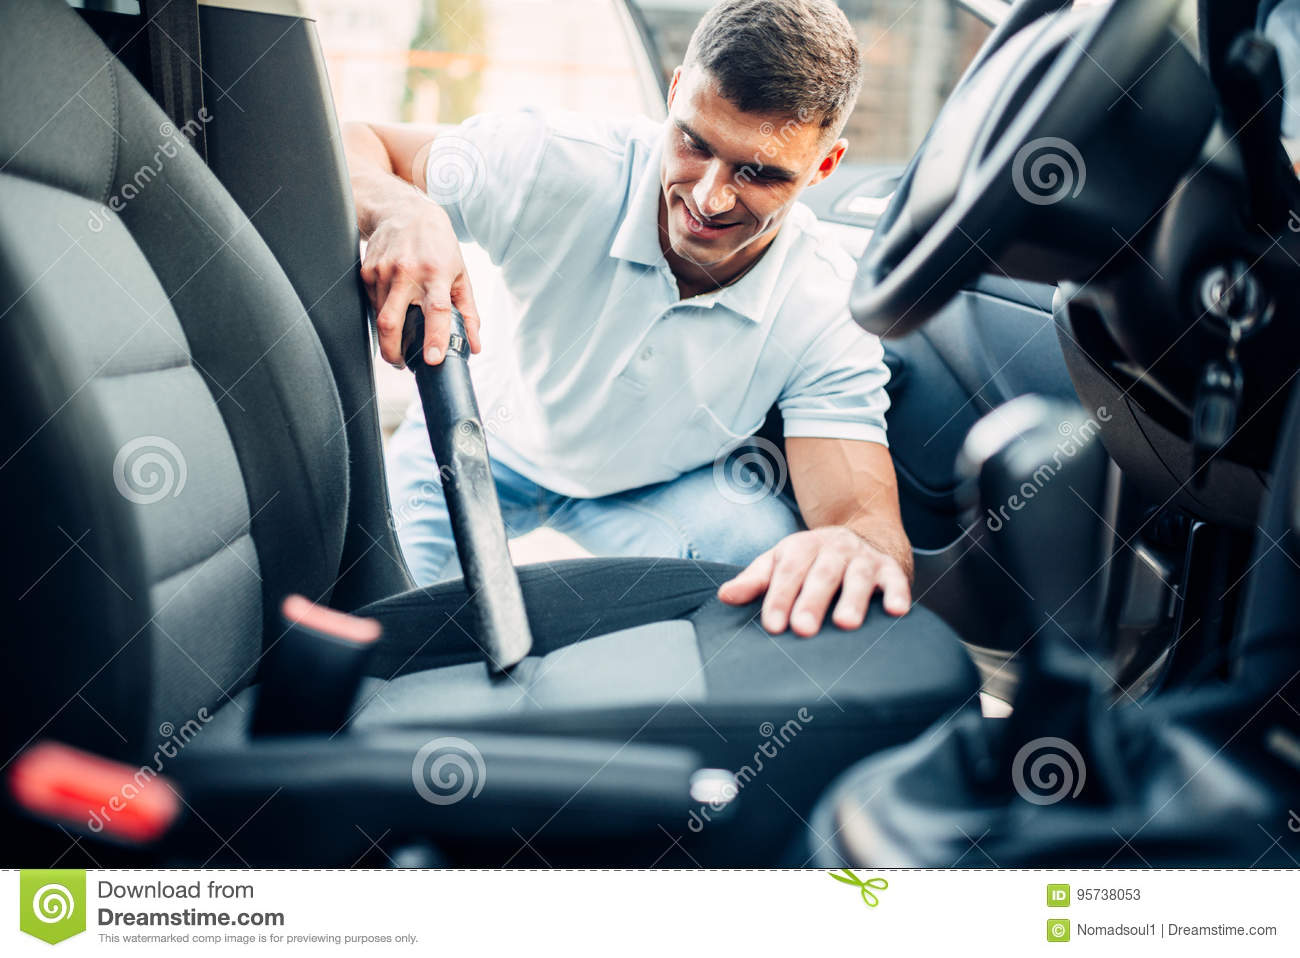 Man Cleans Car Interior With Vacuum Cleaner Stock Image